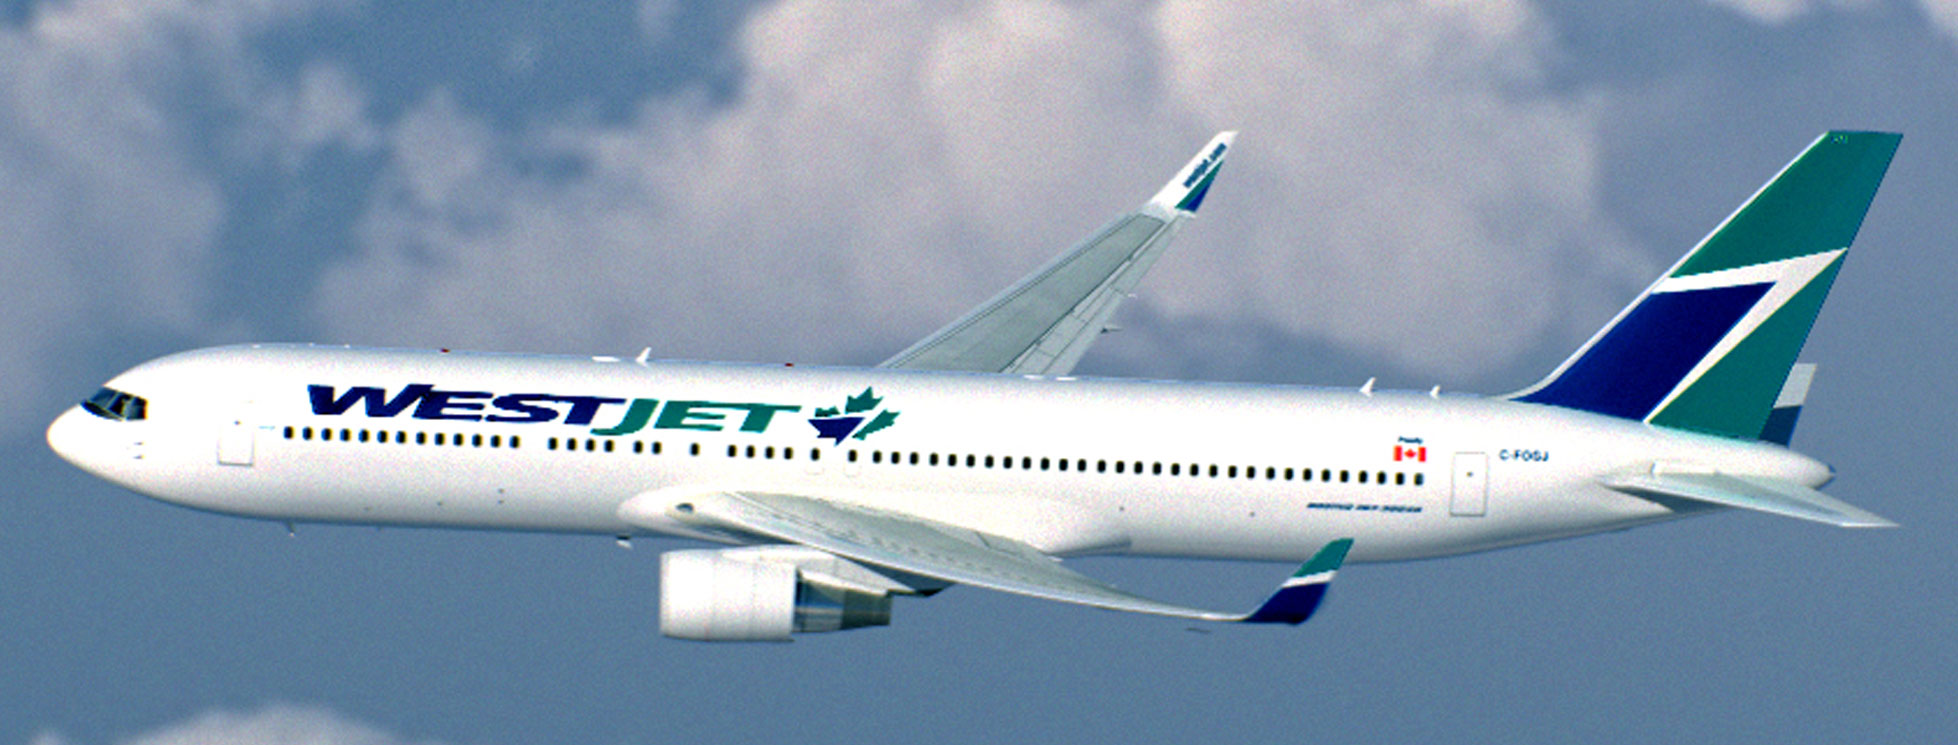 information system of westjet The ceo of westjet asked the new cio to assess whether the company had right technologies, expertise, processes and procedures and solid systems smith assessed the following aspects of it based on.